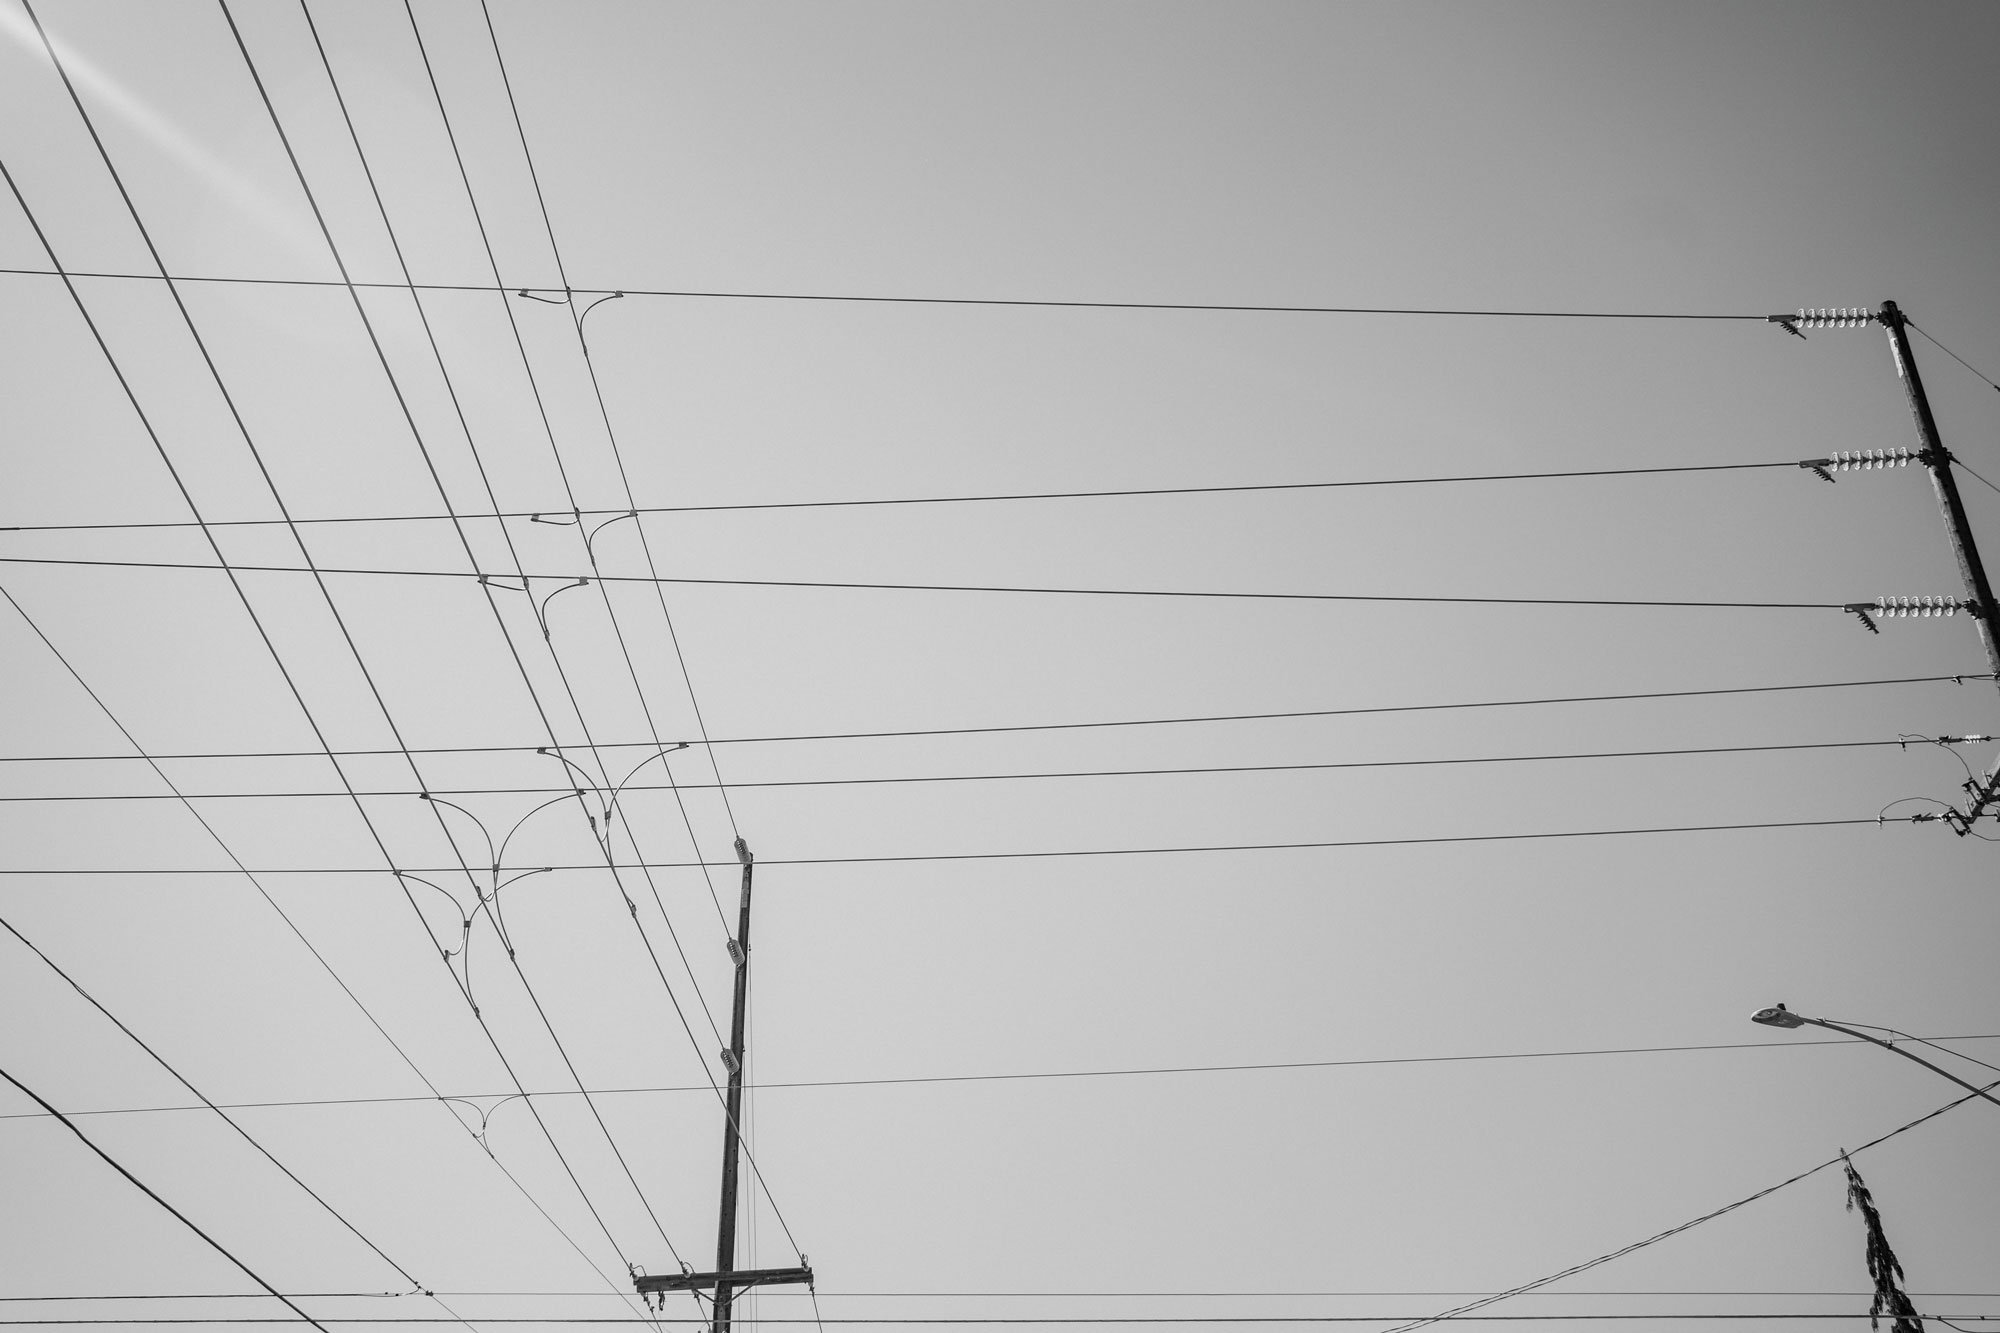 electrical wires in sky